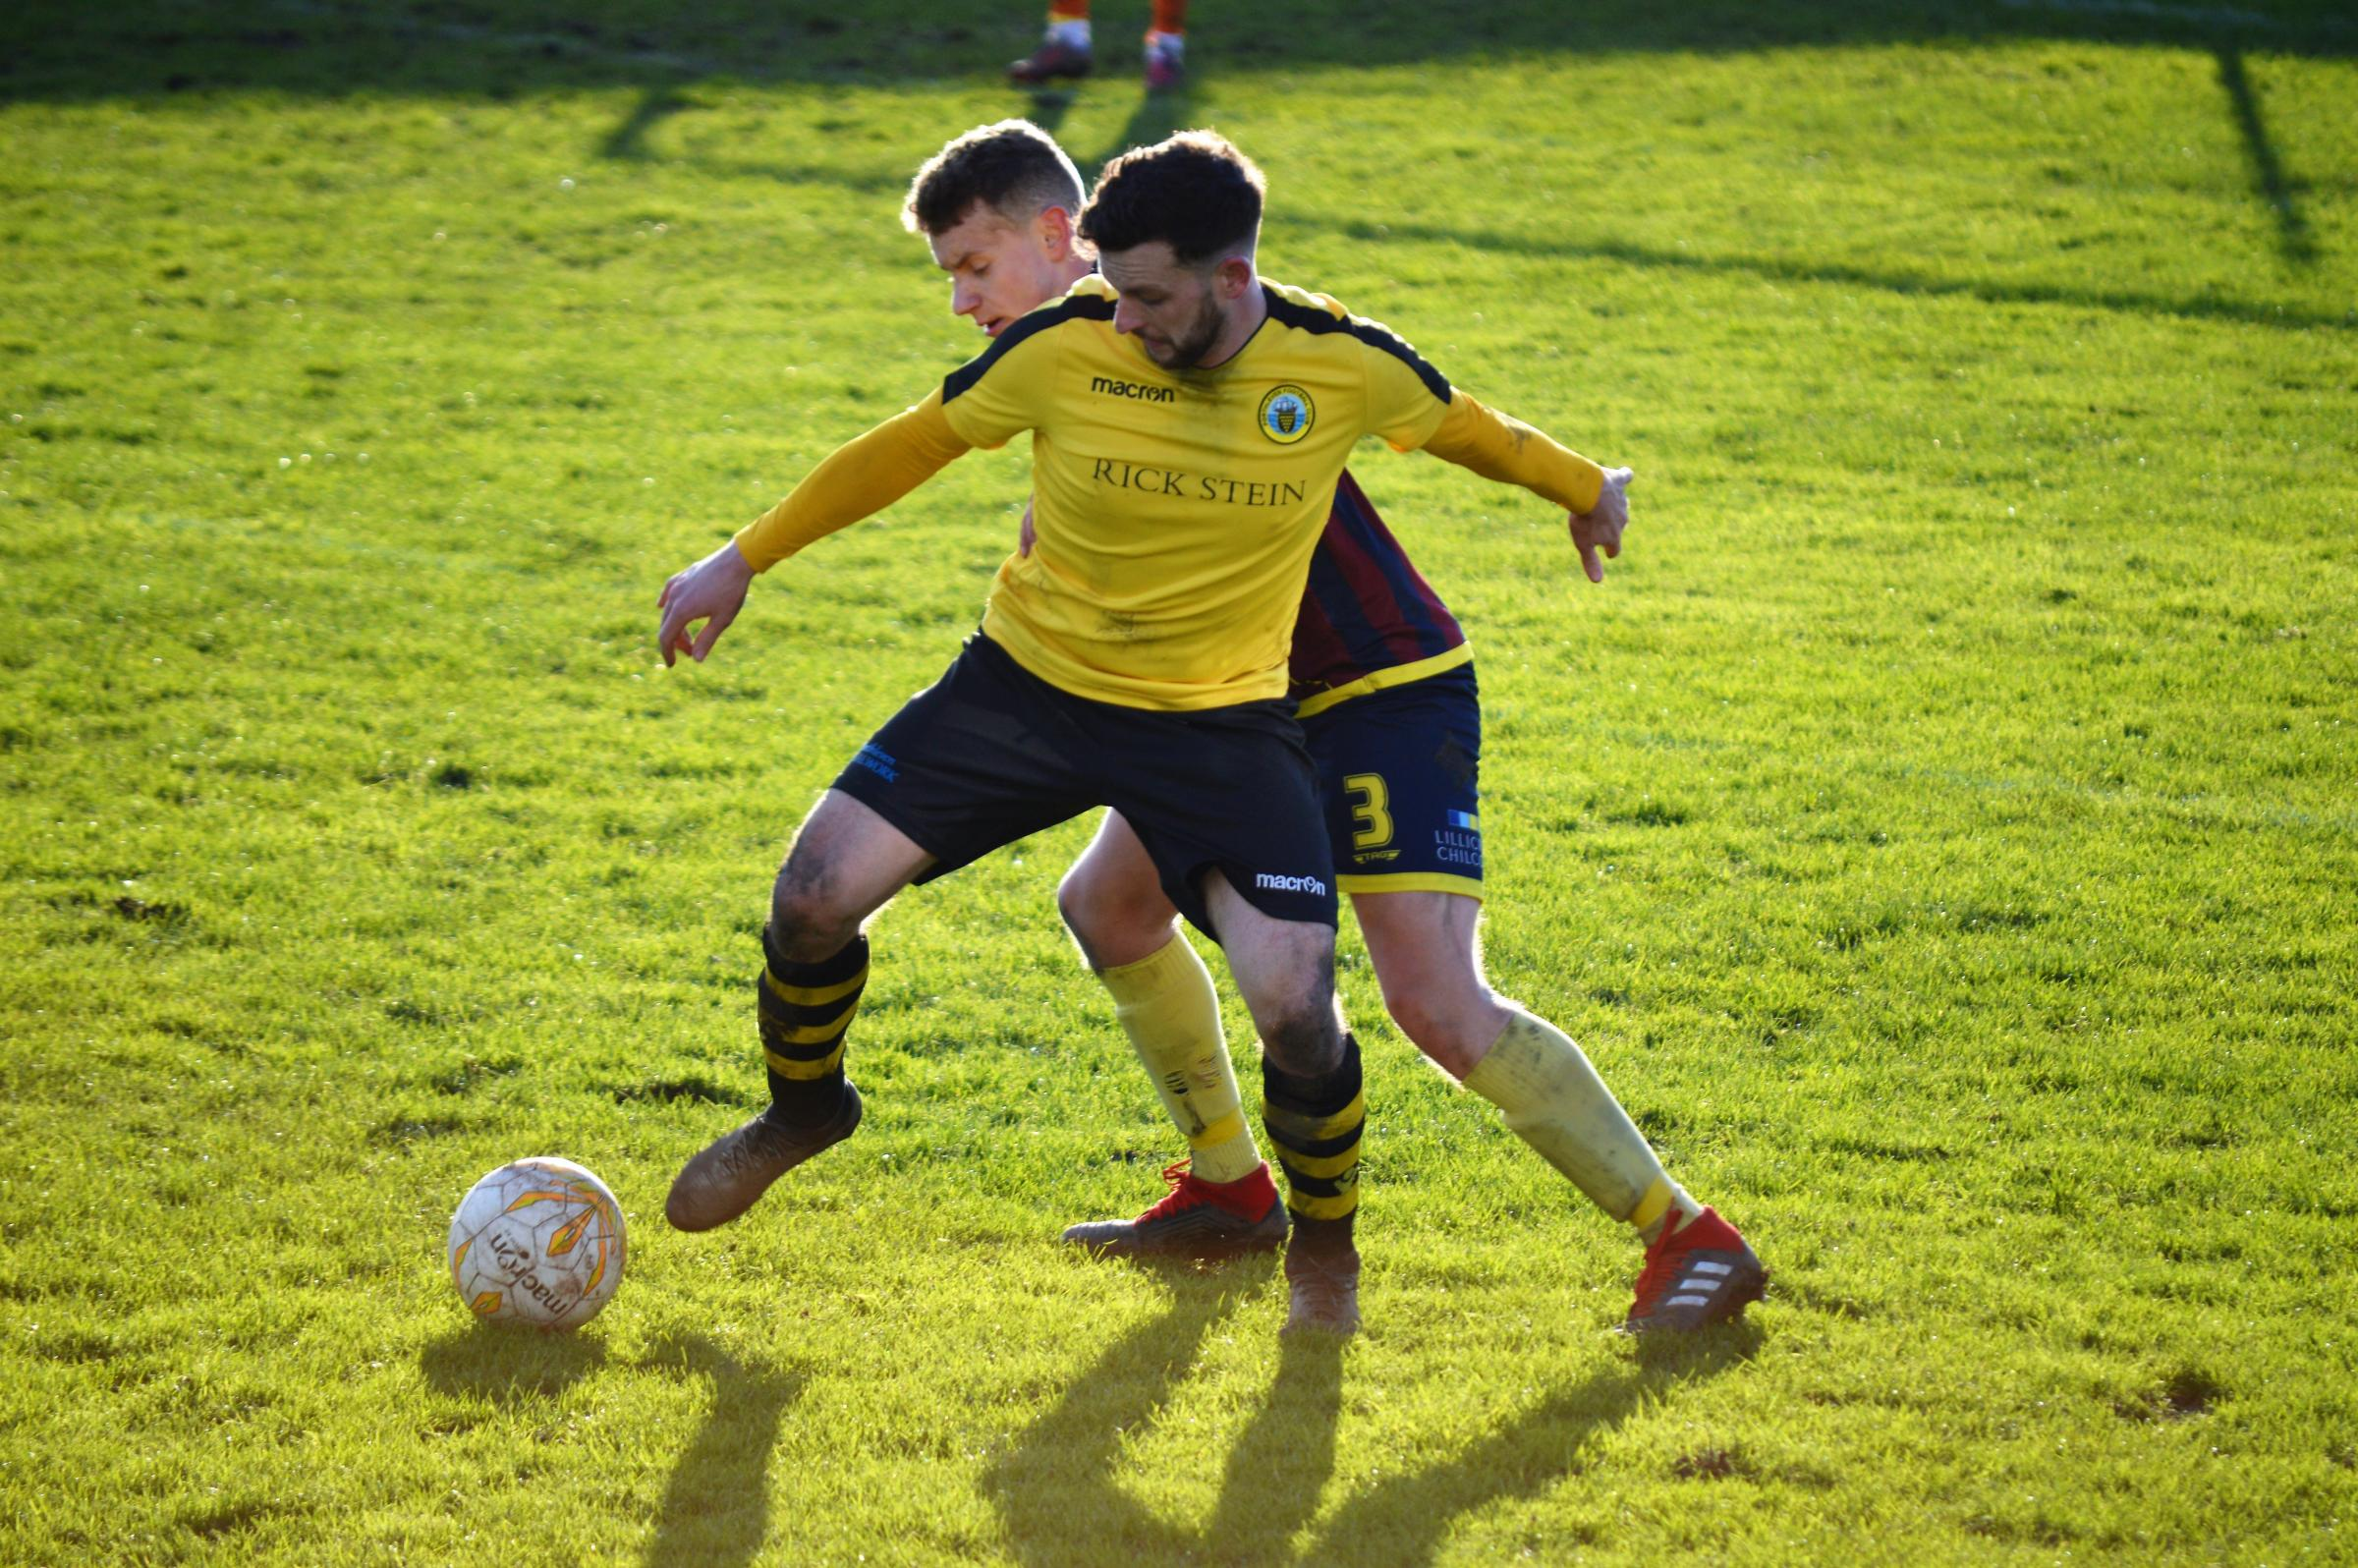 Porthleven returned to the top of the South West Peninsula League Division 1 West on Saturday